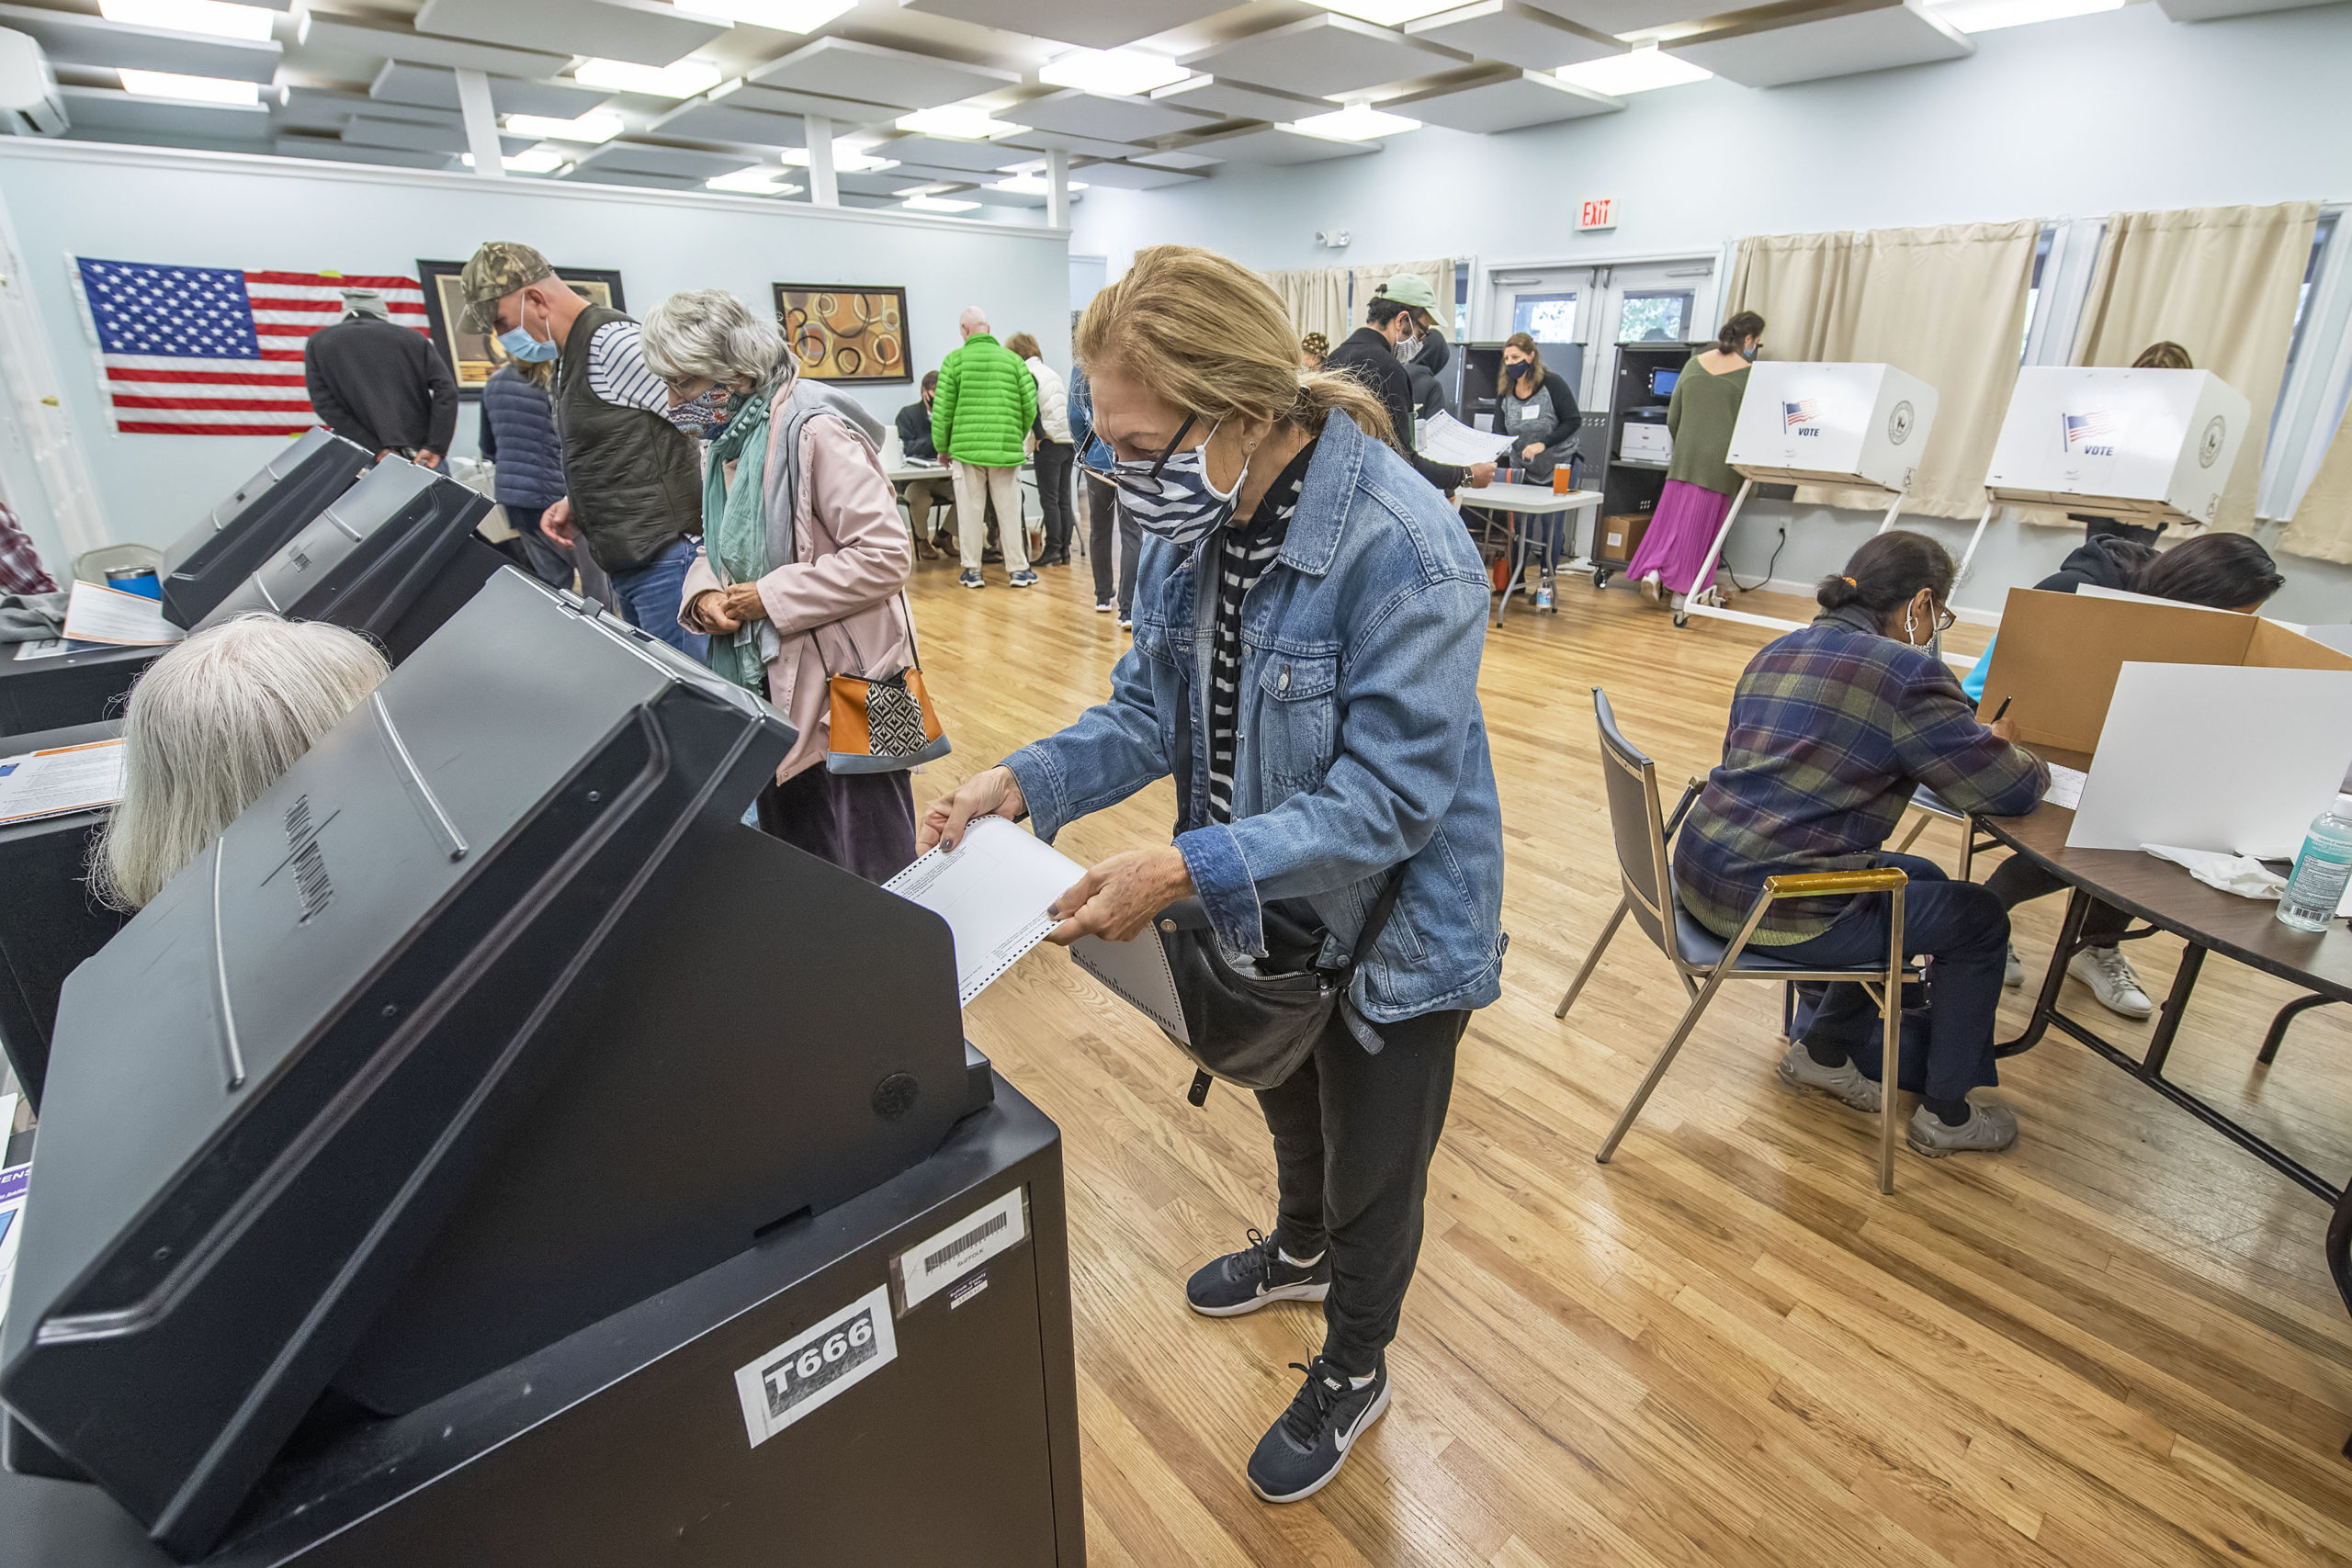 Voters cast their ballots as part of Early Voting in East Hampton Town at the Windmill Village complex on Accabonac Road on Monday morning.   MICHAEL HELLER